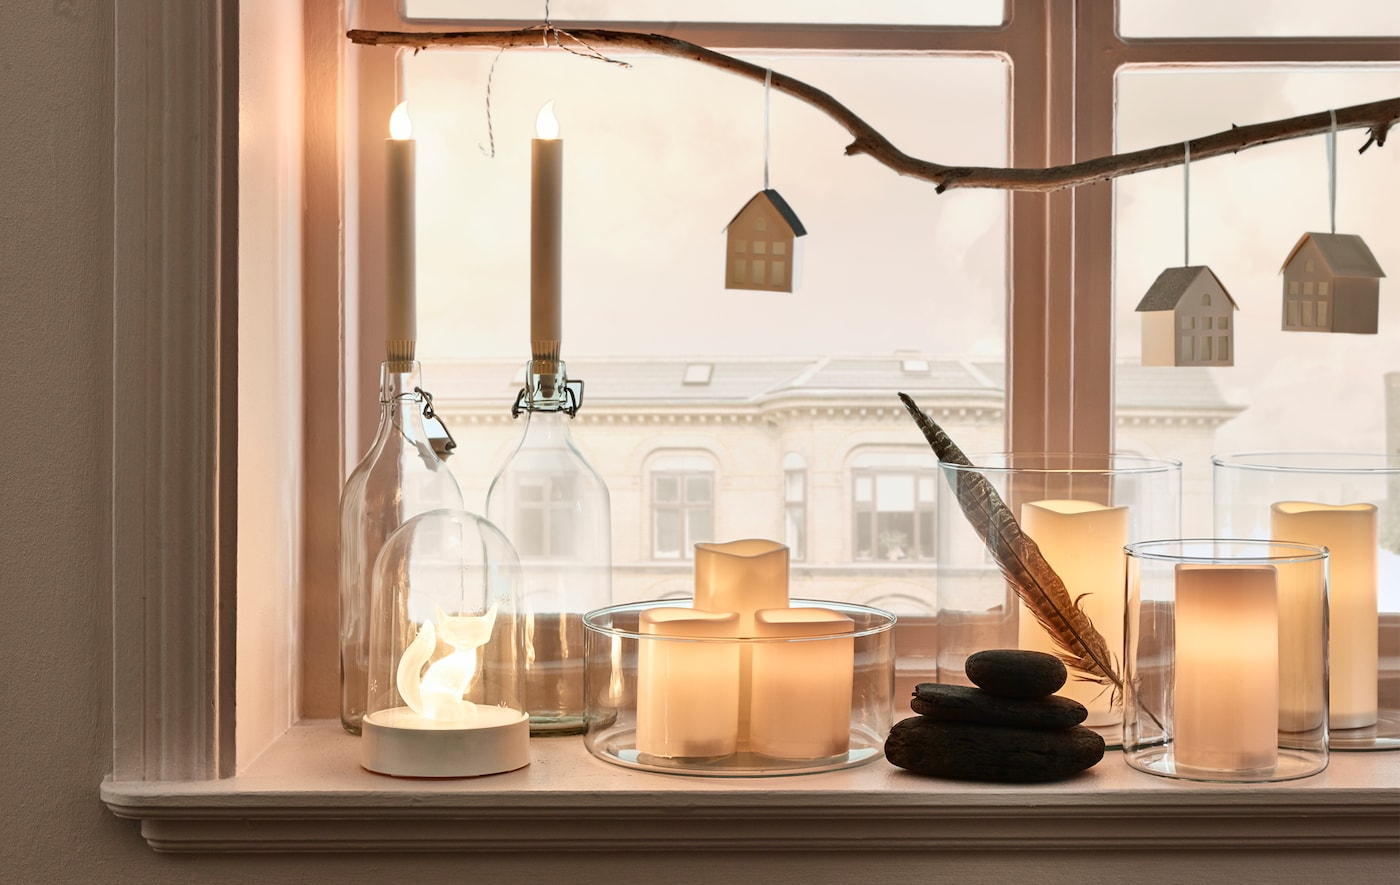 A collection of LJUSANDE LED battery-operated candles and GODAFTON LED block candles, in glass vases by a window.